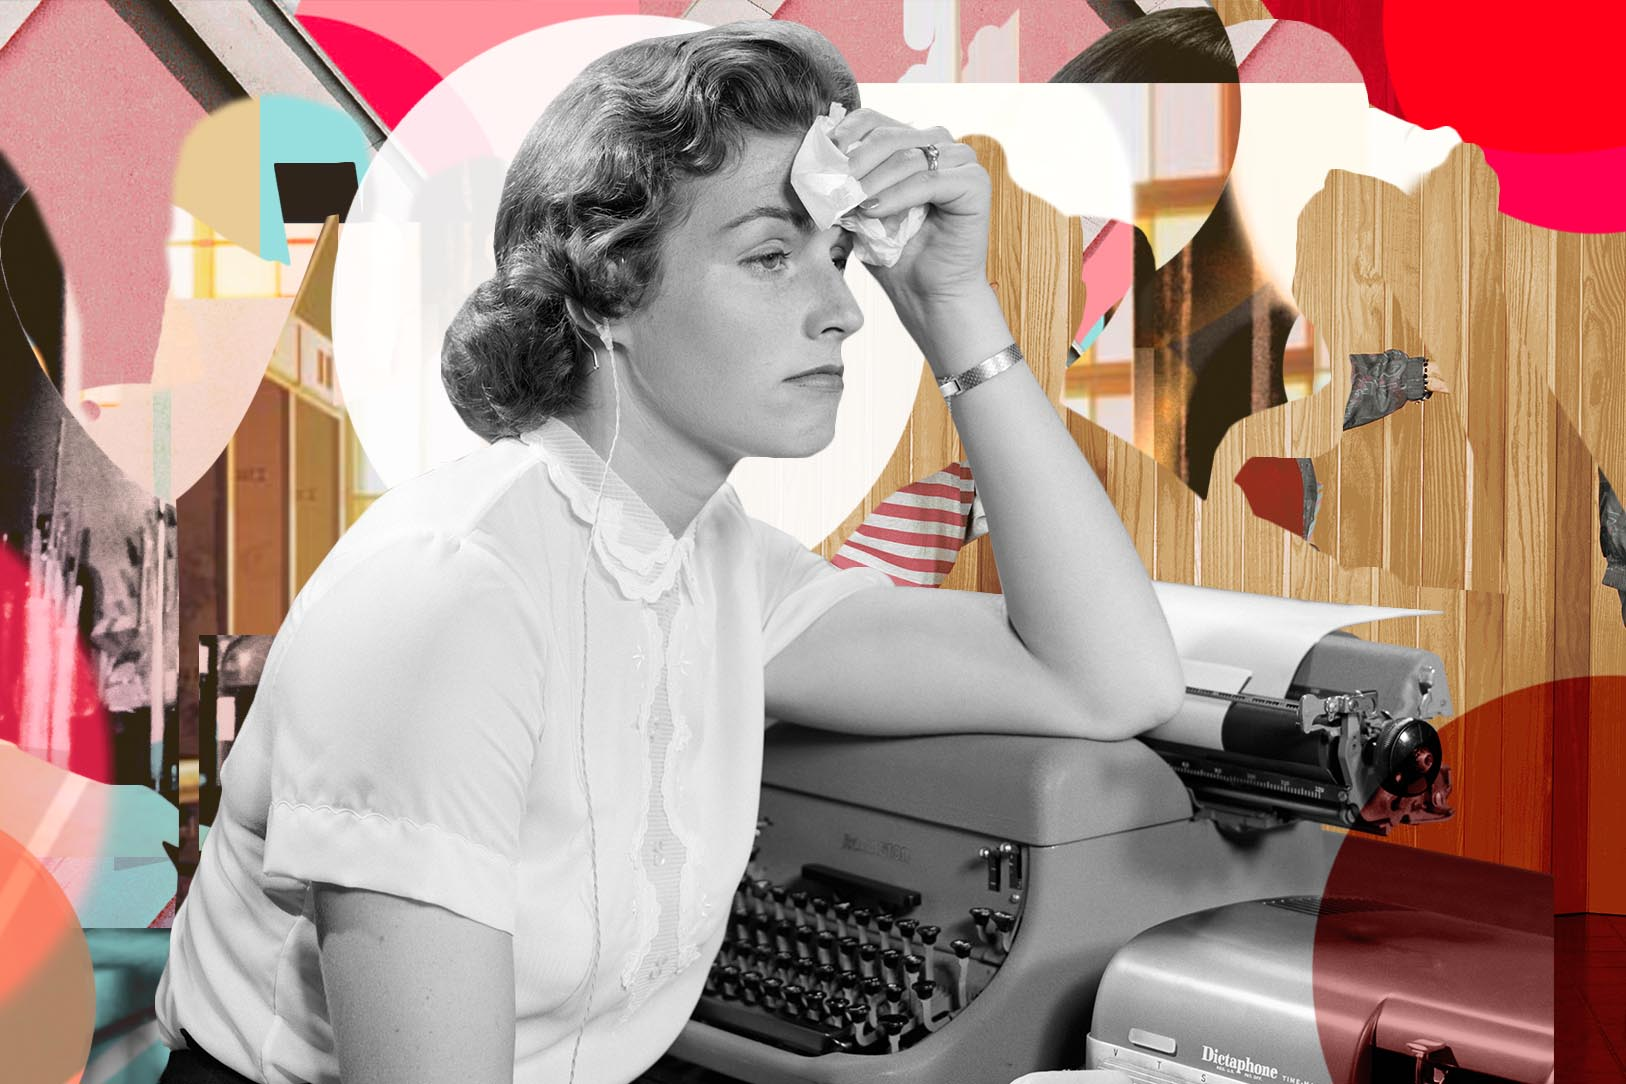 Exasperated female office worker sitting at typewriter.